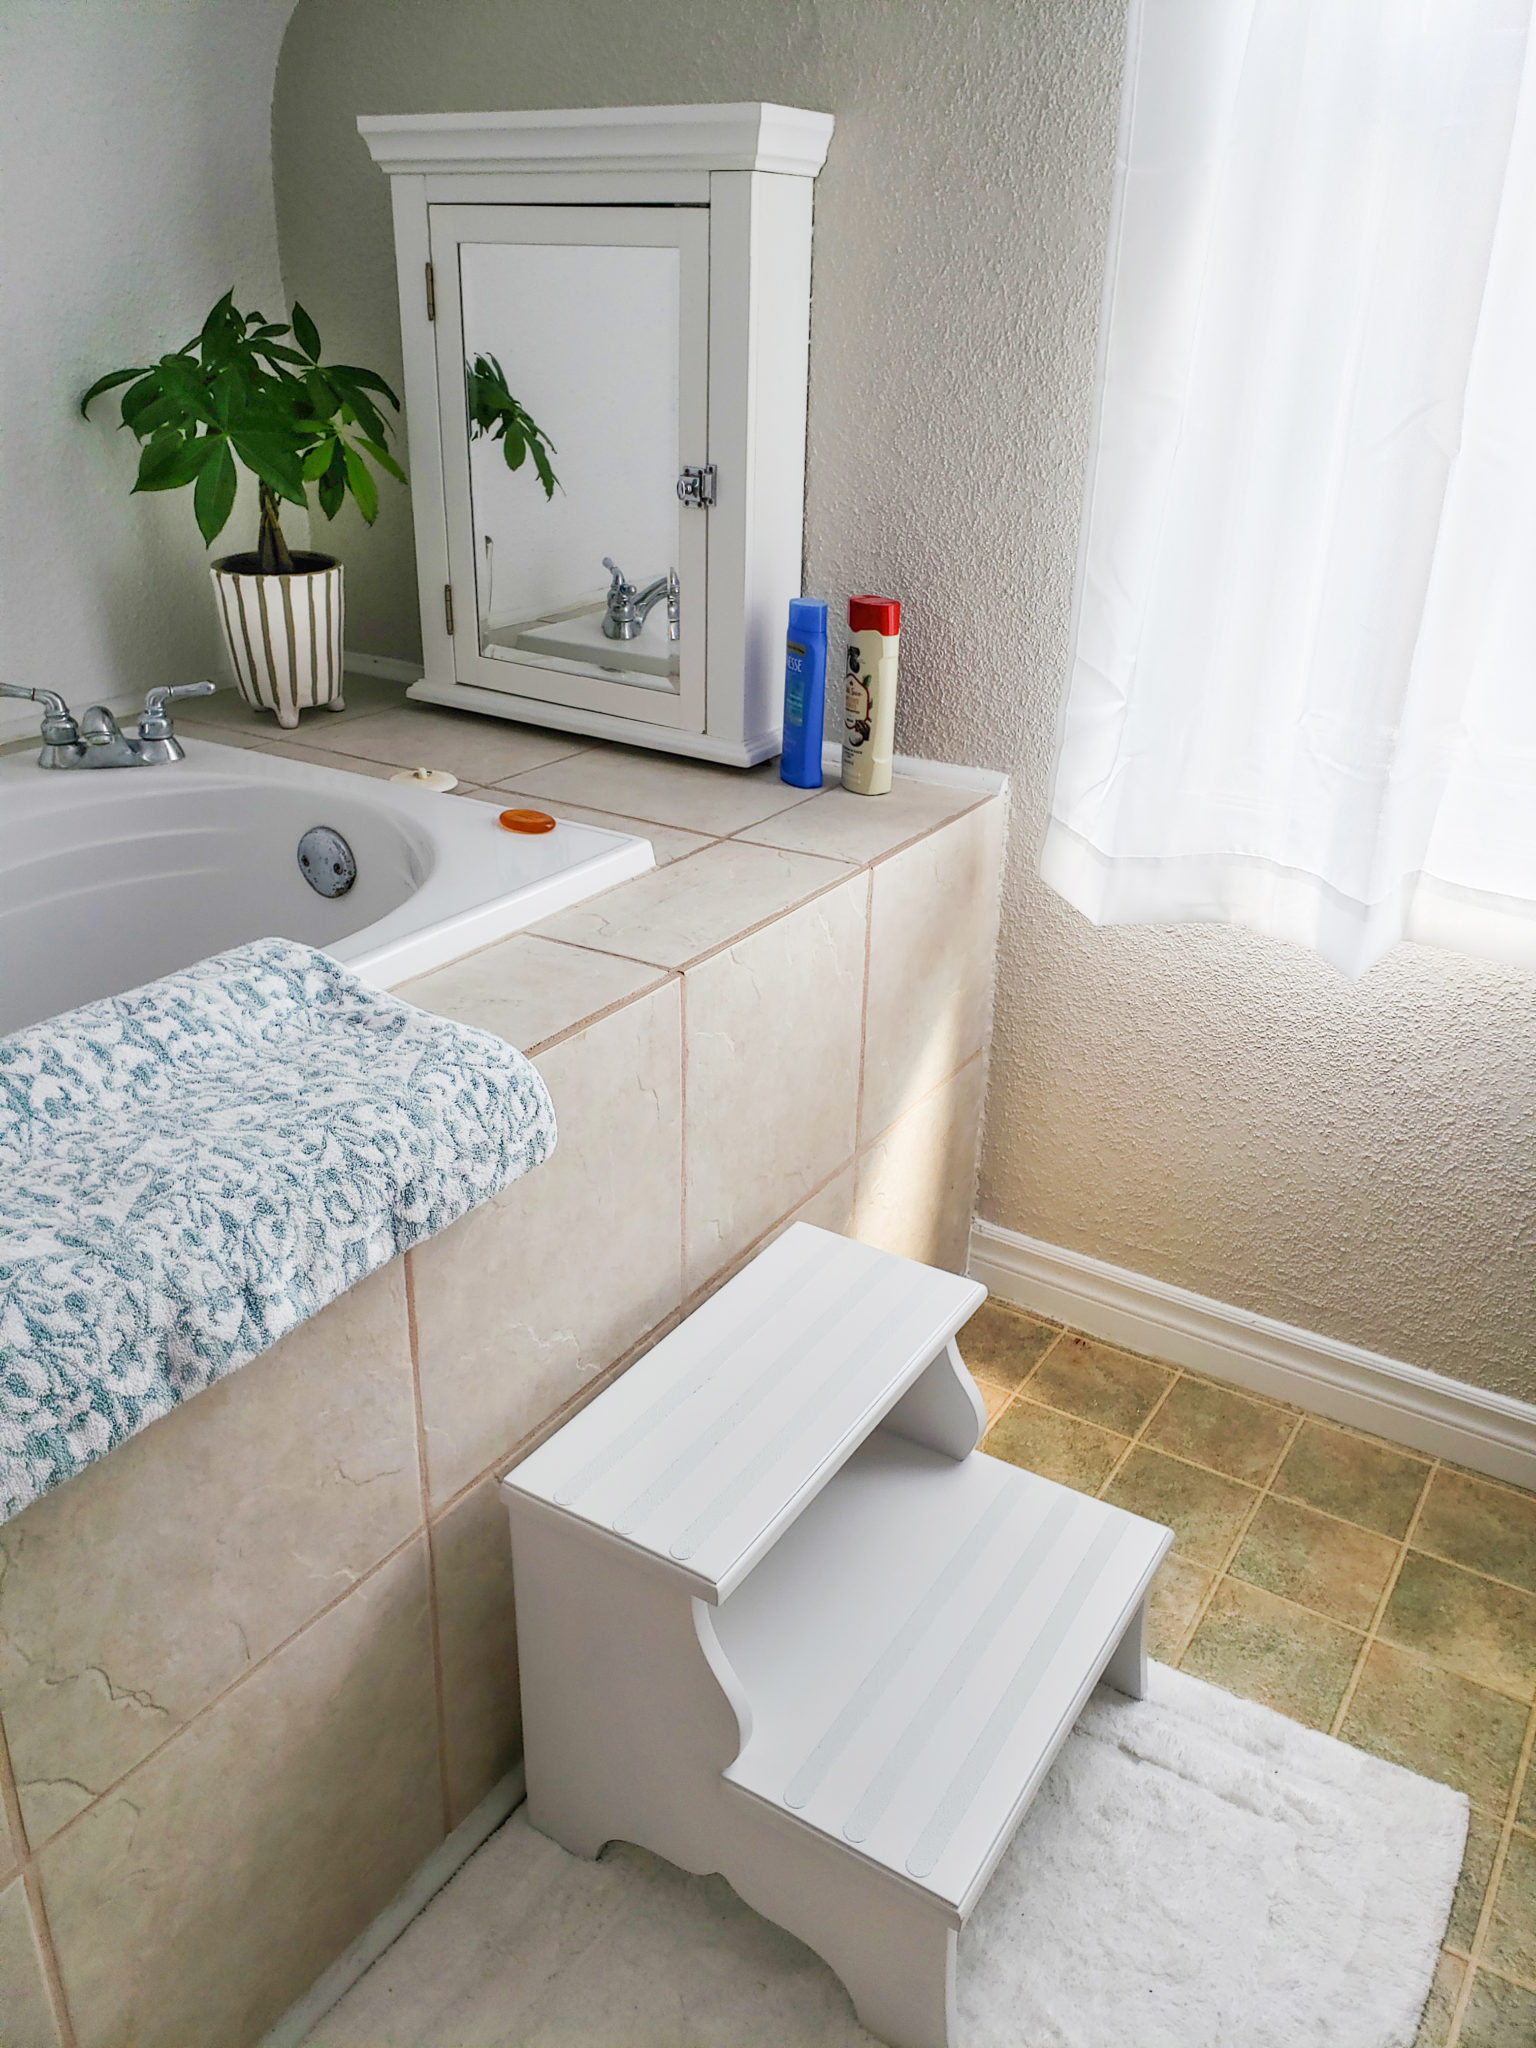 Bath area front - After